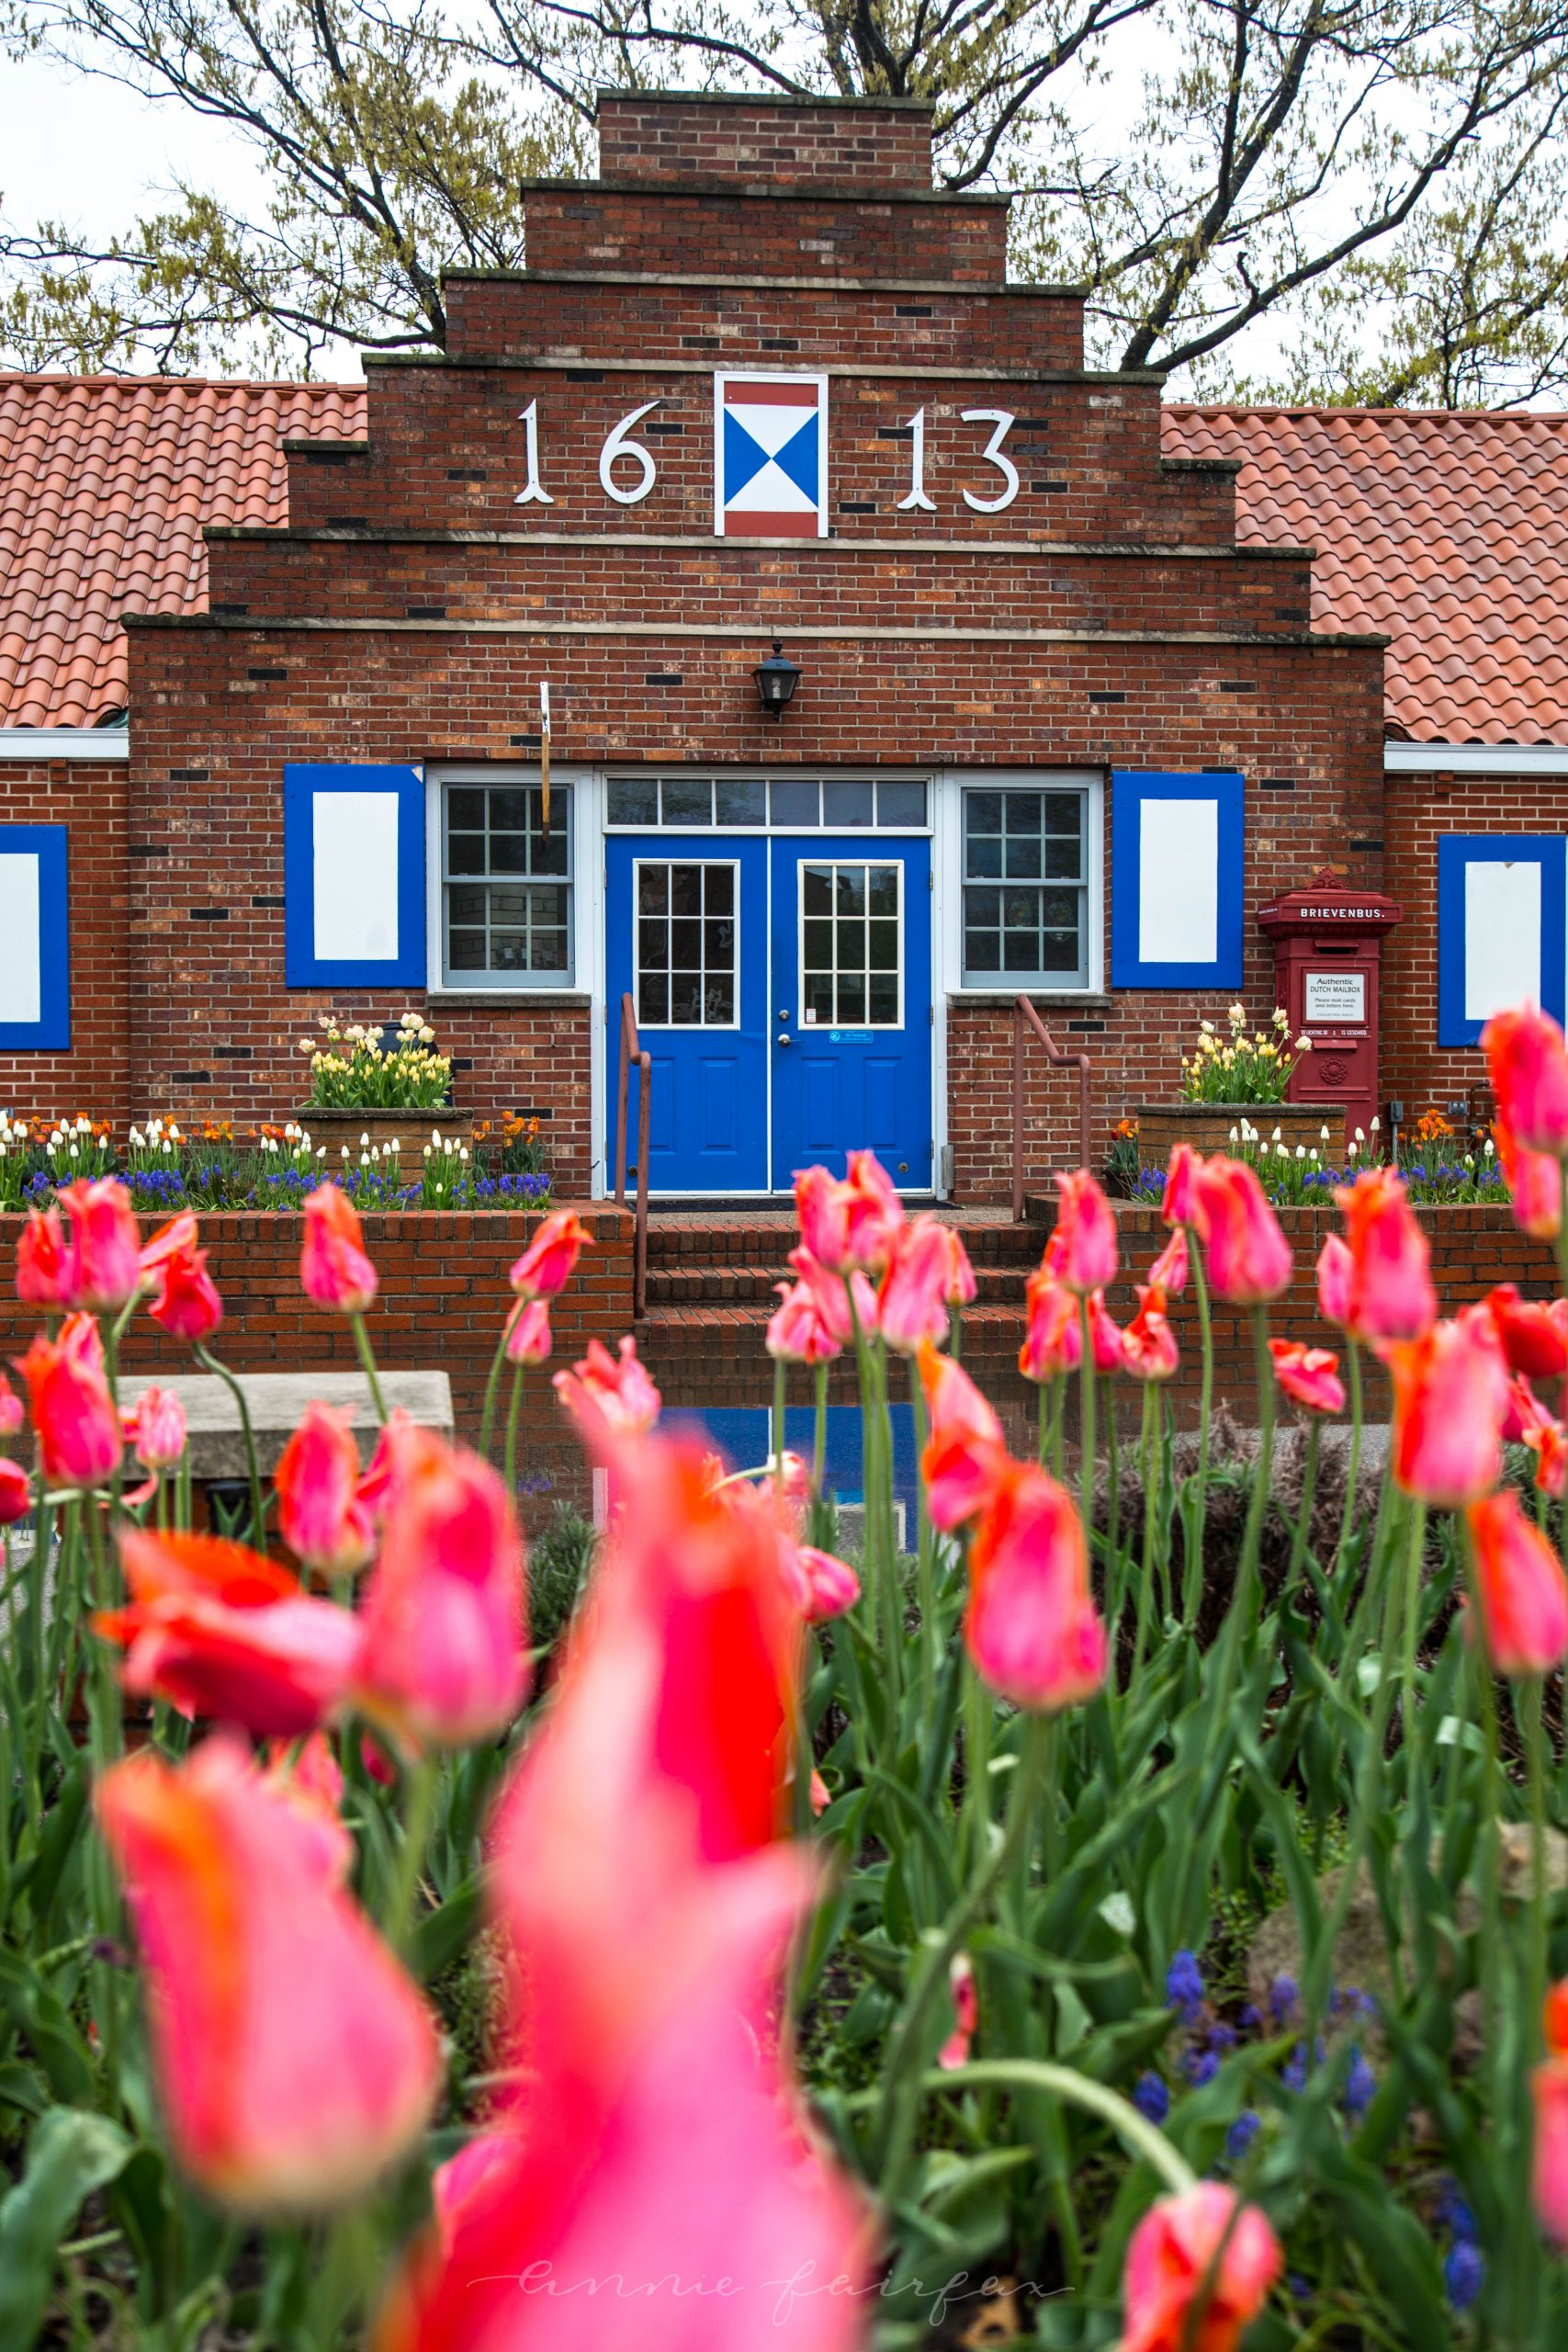 Holland Michigan by Annie Fairfax Dutch Tulips 1613 Village Building and Post Office Netherlands